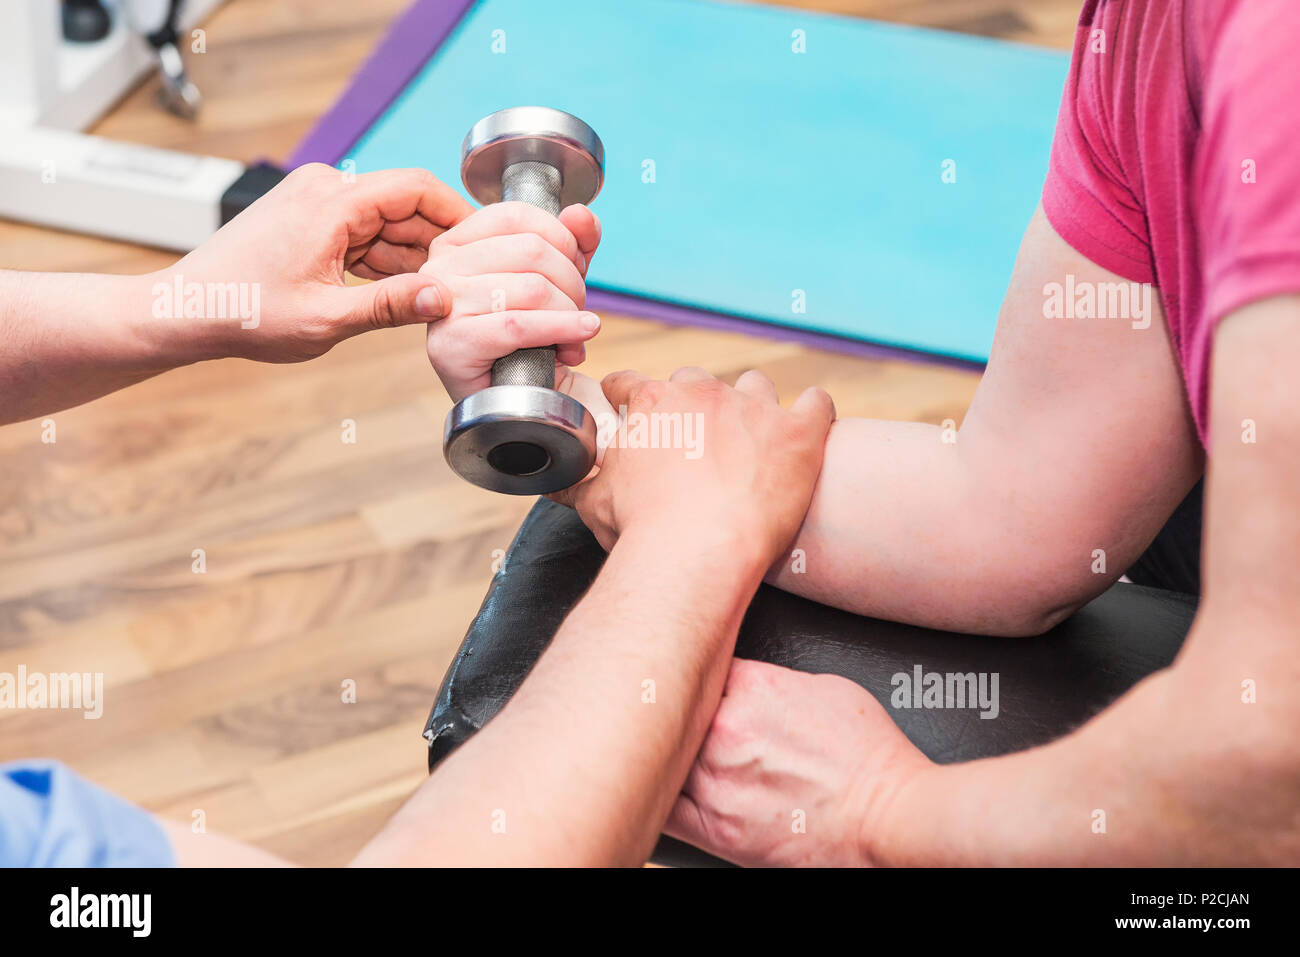 No face elderly woman doing active, working with dumbbell guided by physical therapist at the hospital rehabilitation center. Osteopathy, chiropractic - Stock Image